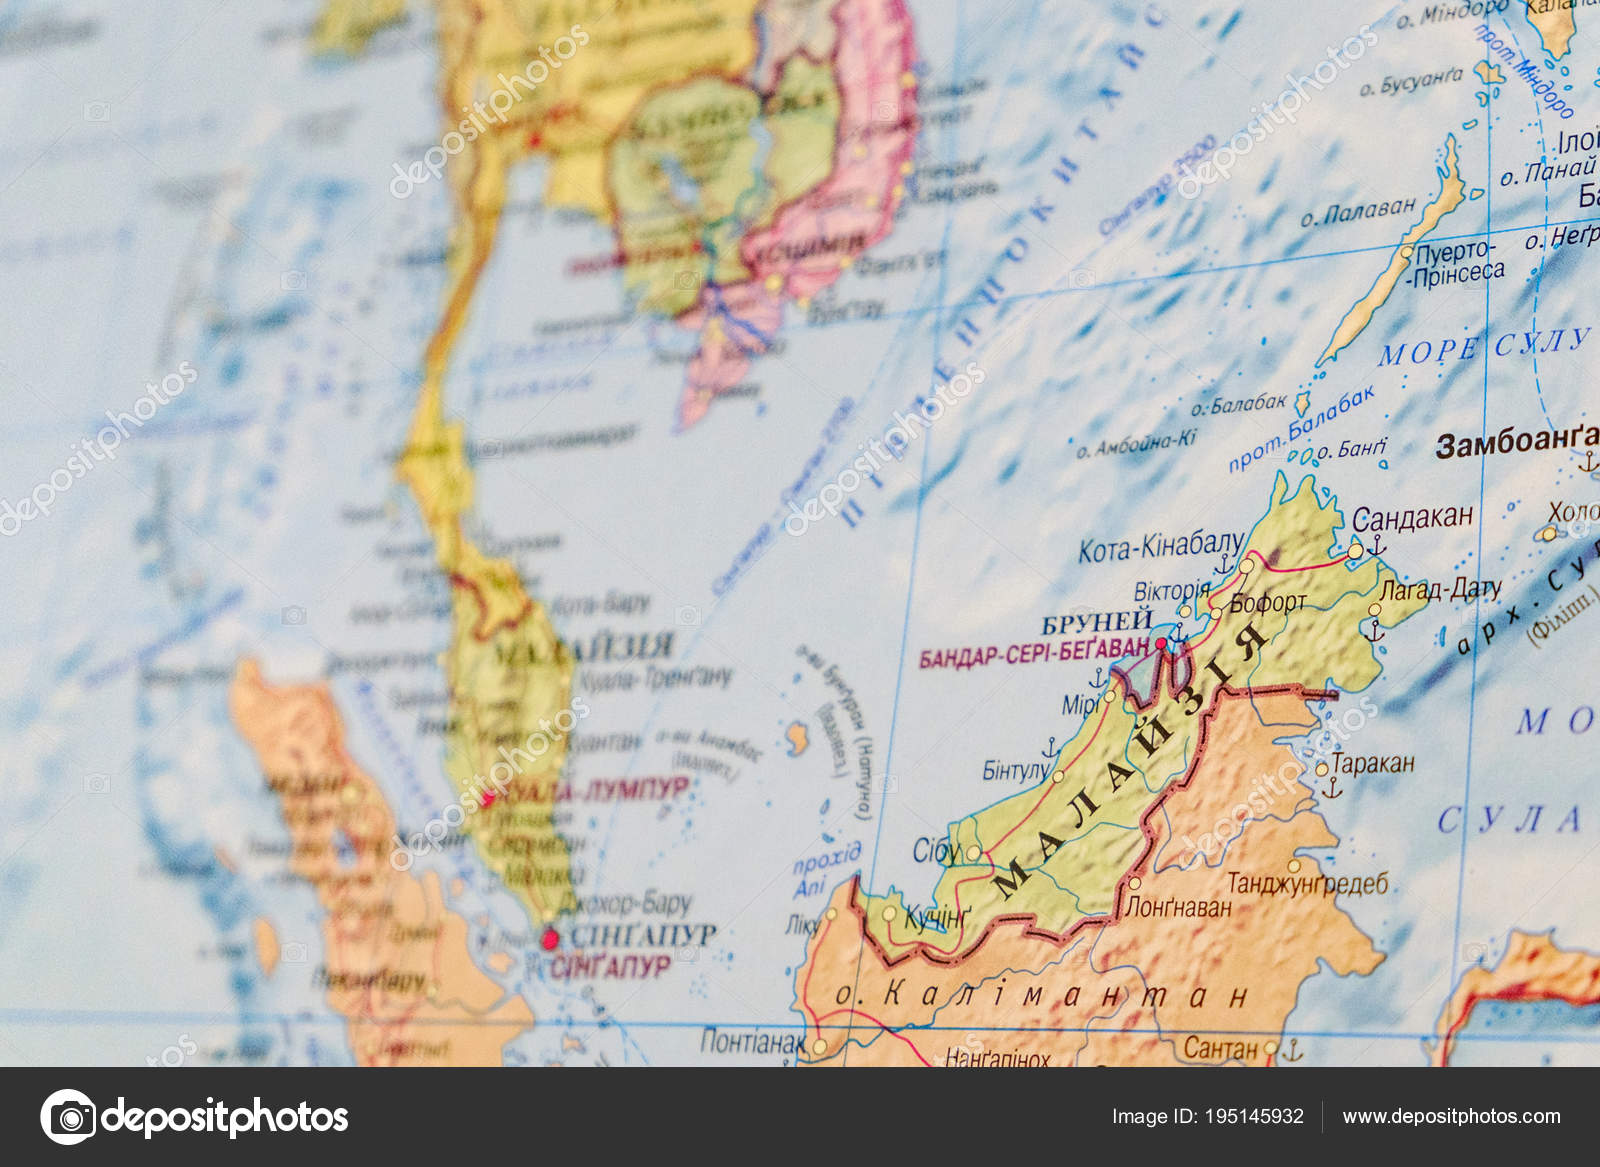 Malaysia On The World Map.View Of Malaysia On The World Map Russian Map Stock Photo